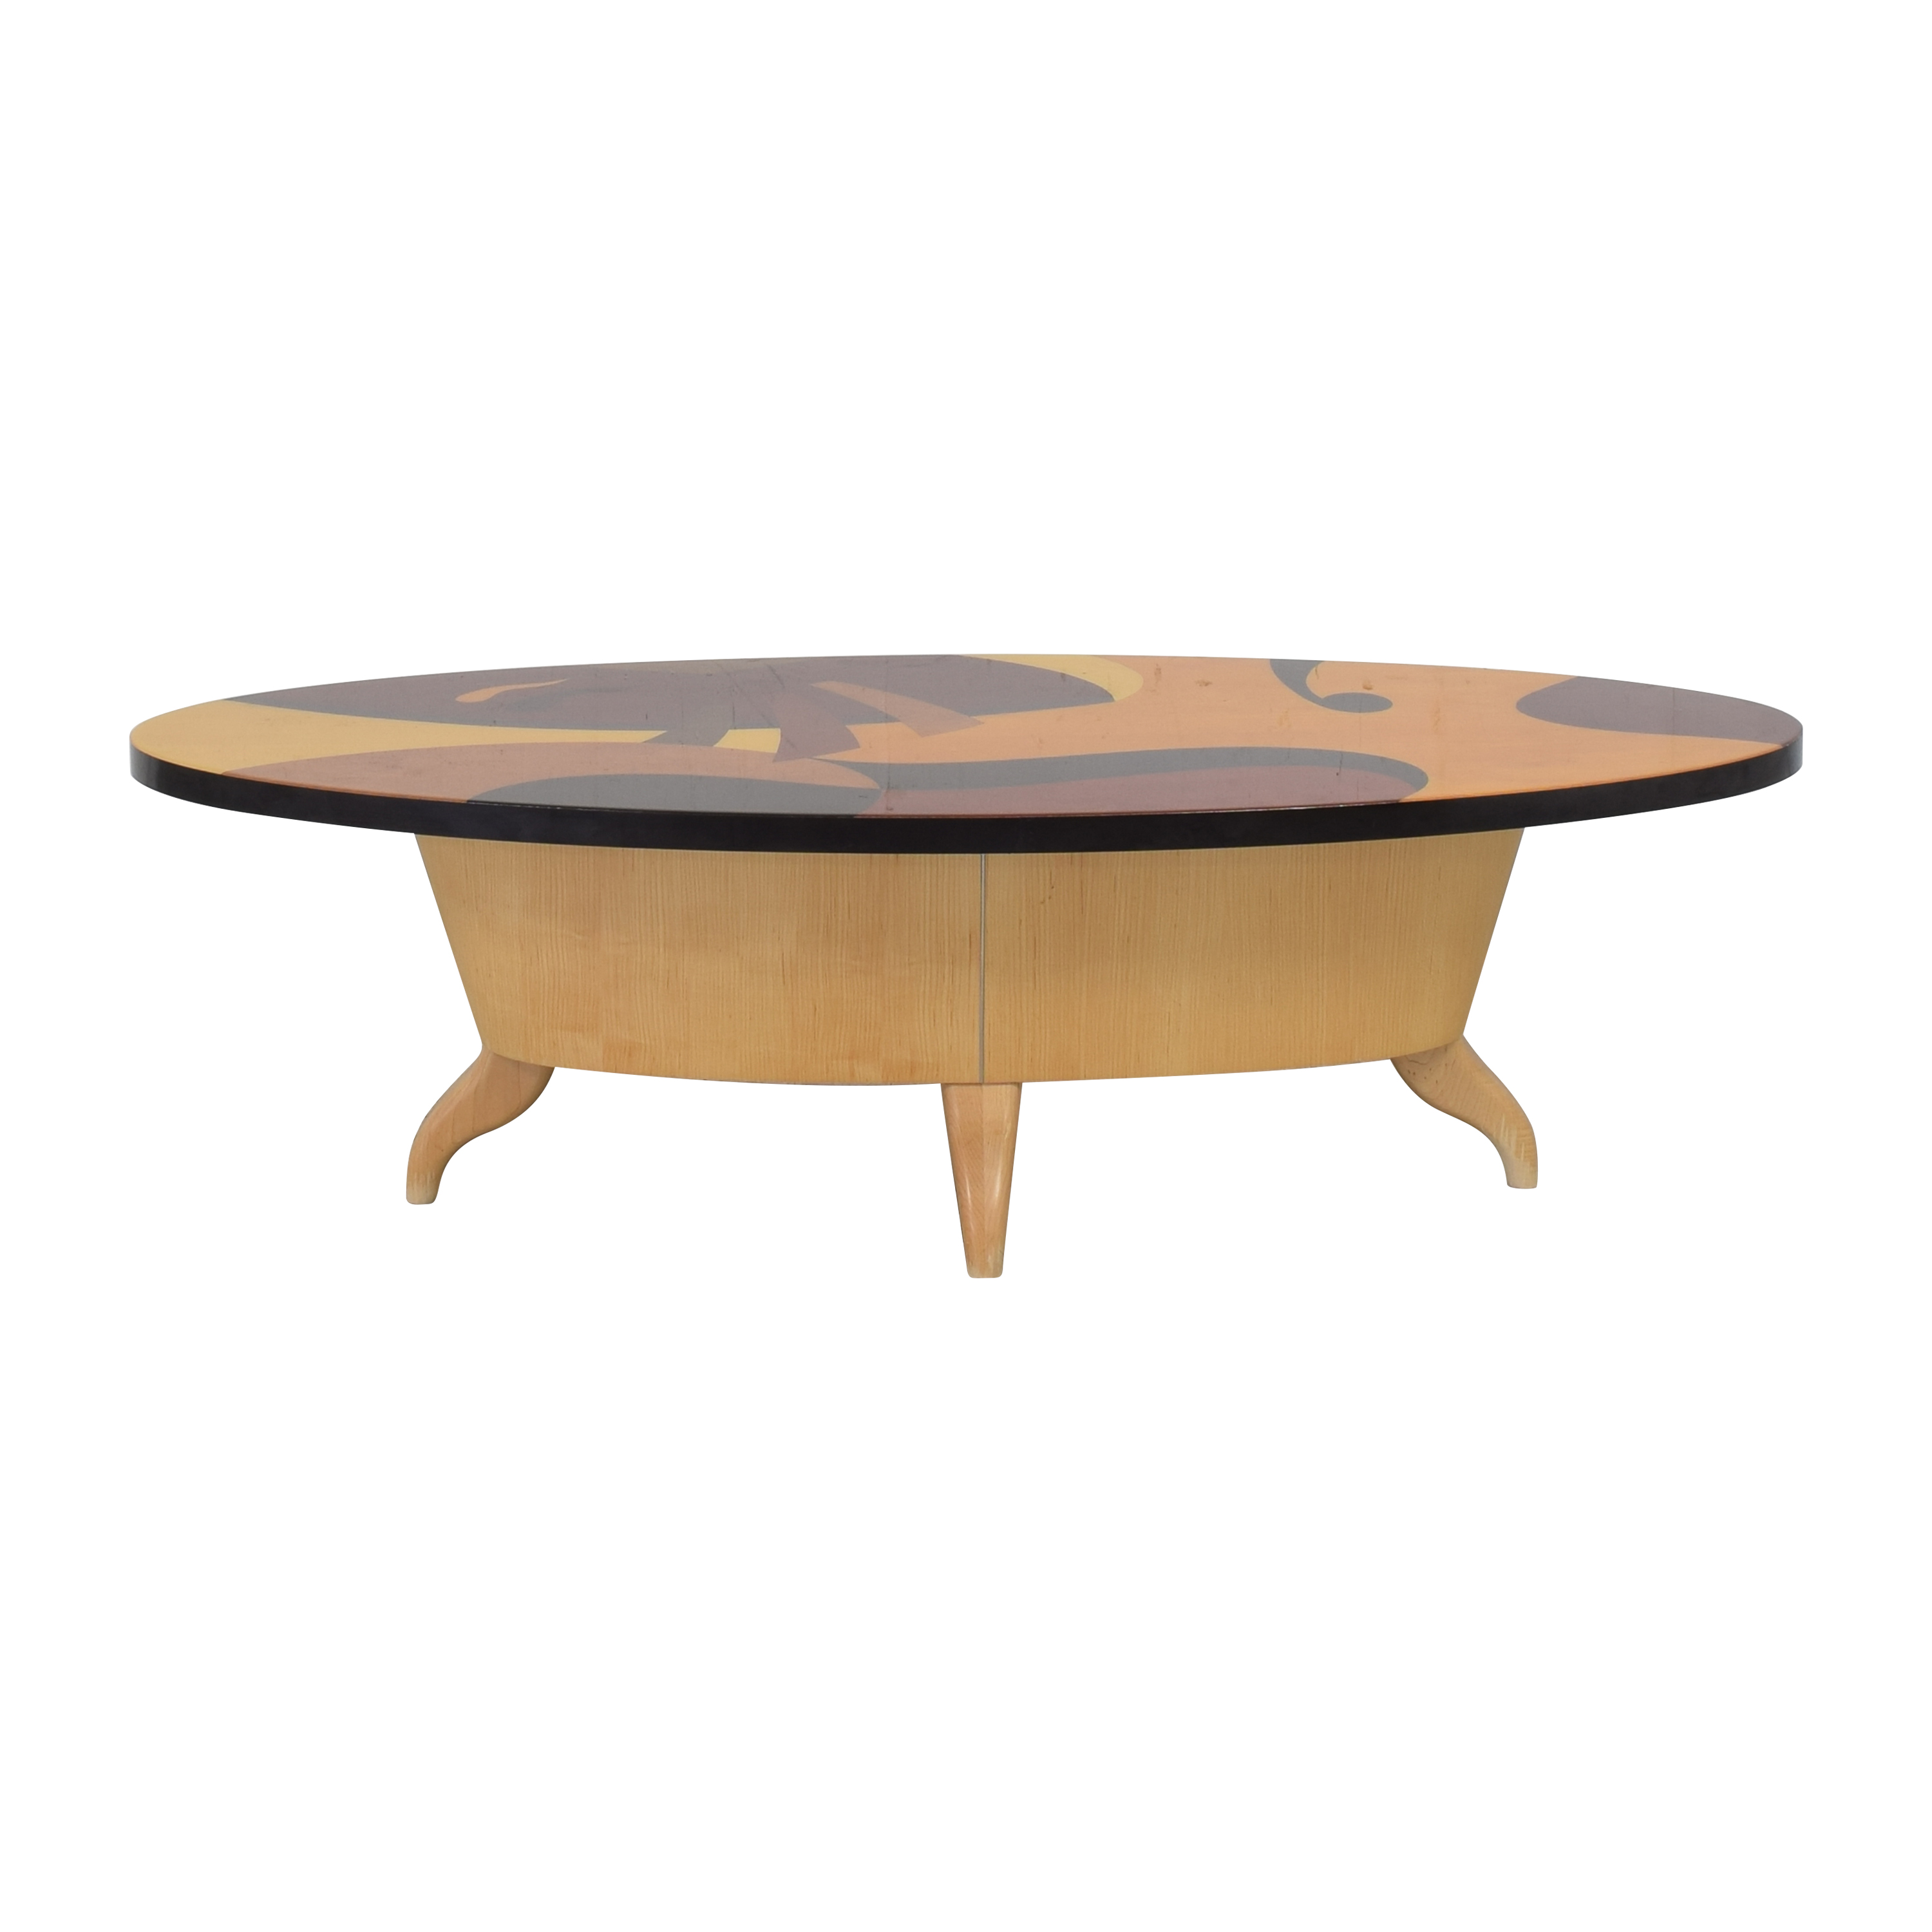 Benjamin Le-Style Abstract Oval Coffee Table nj